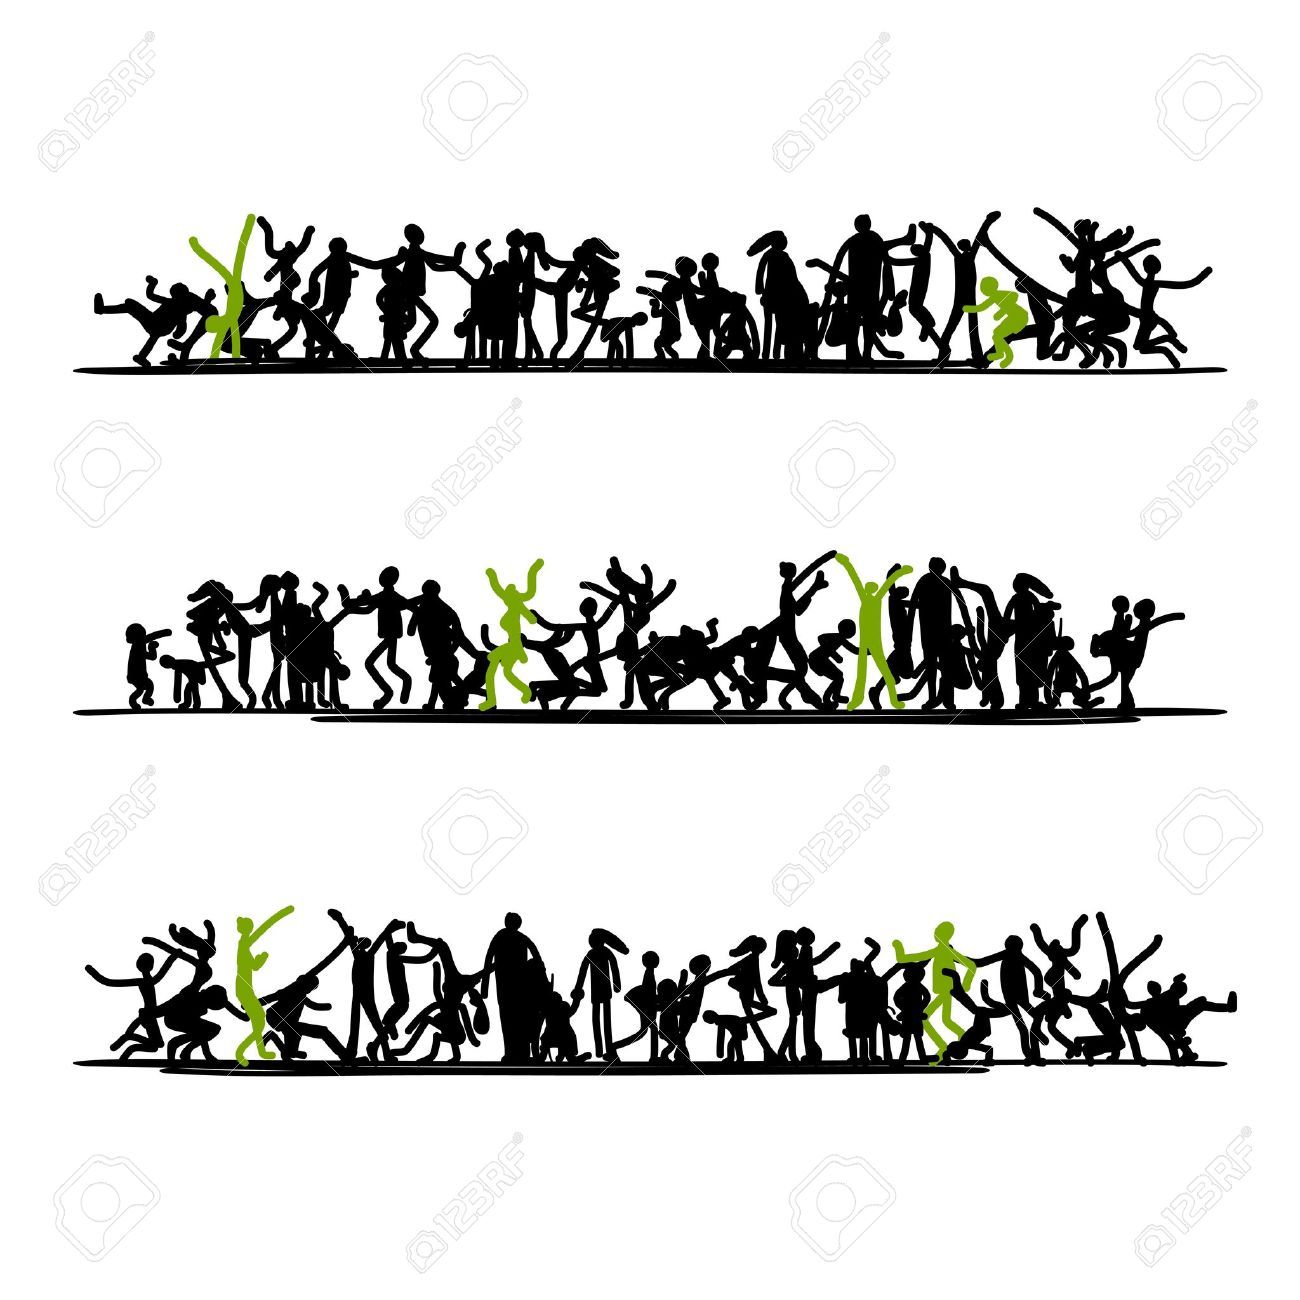 Sketch of people crowd for your design Stock Vector - 19631359